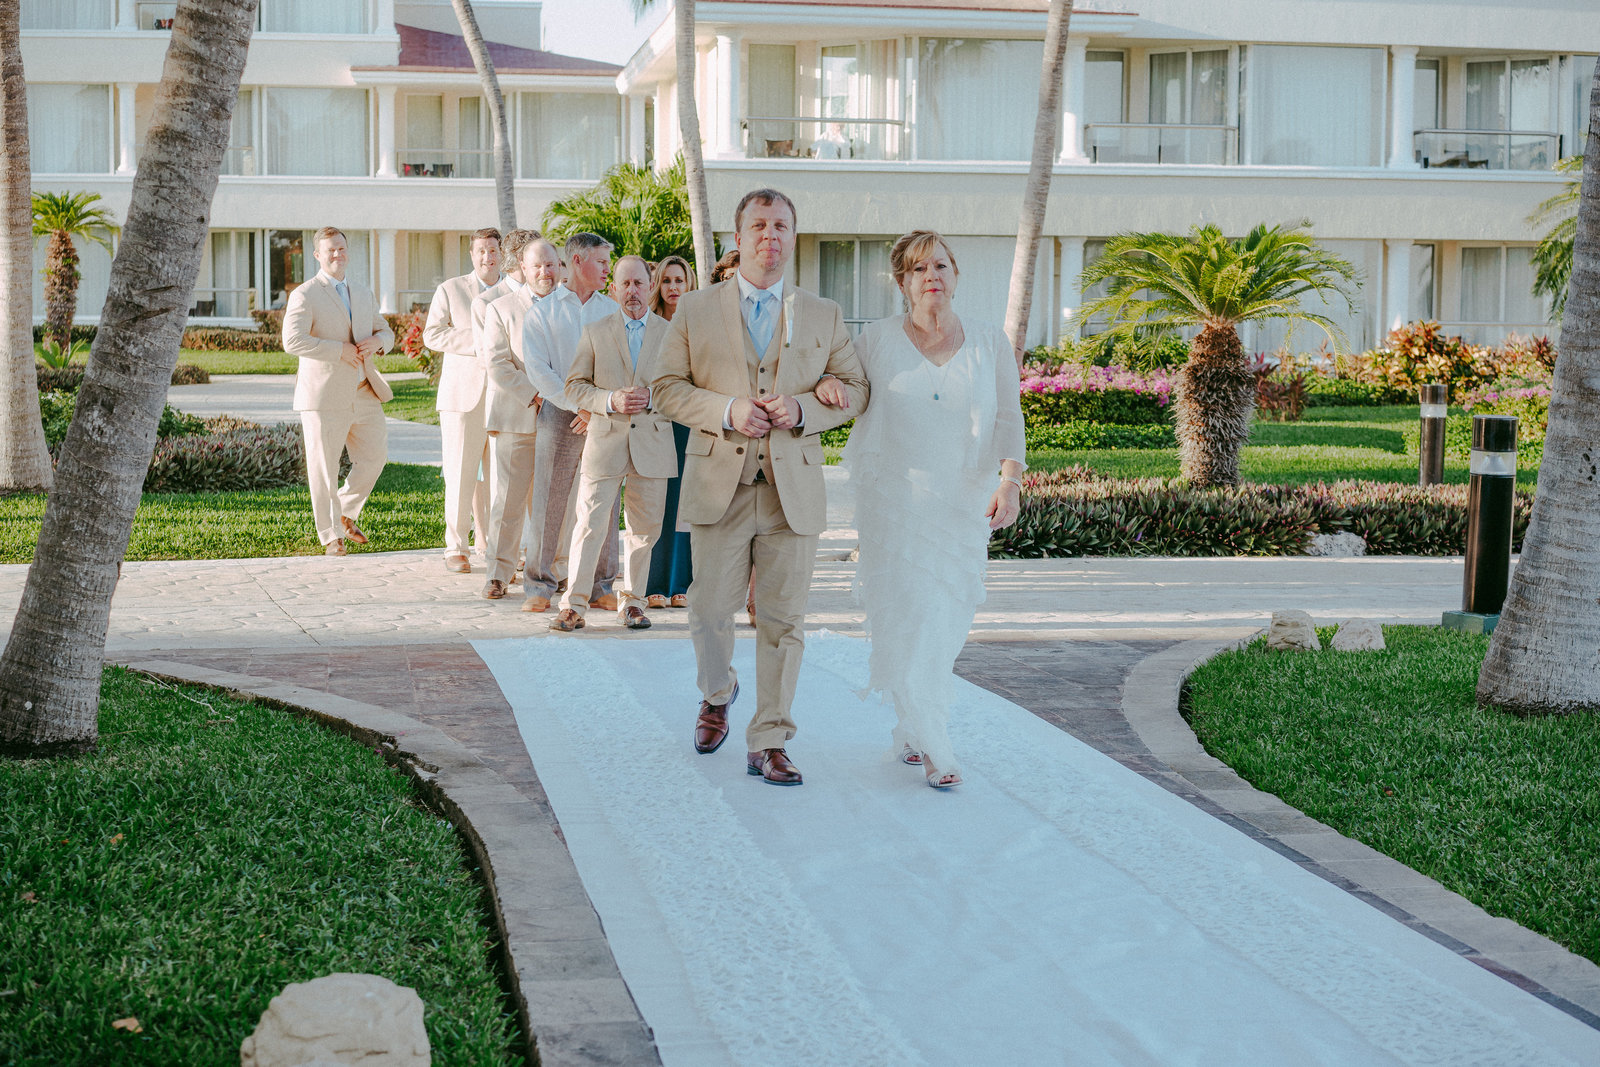 Moon-palace-cancun-wedding-405-brides-photographer